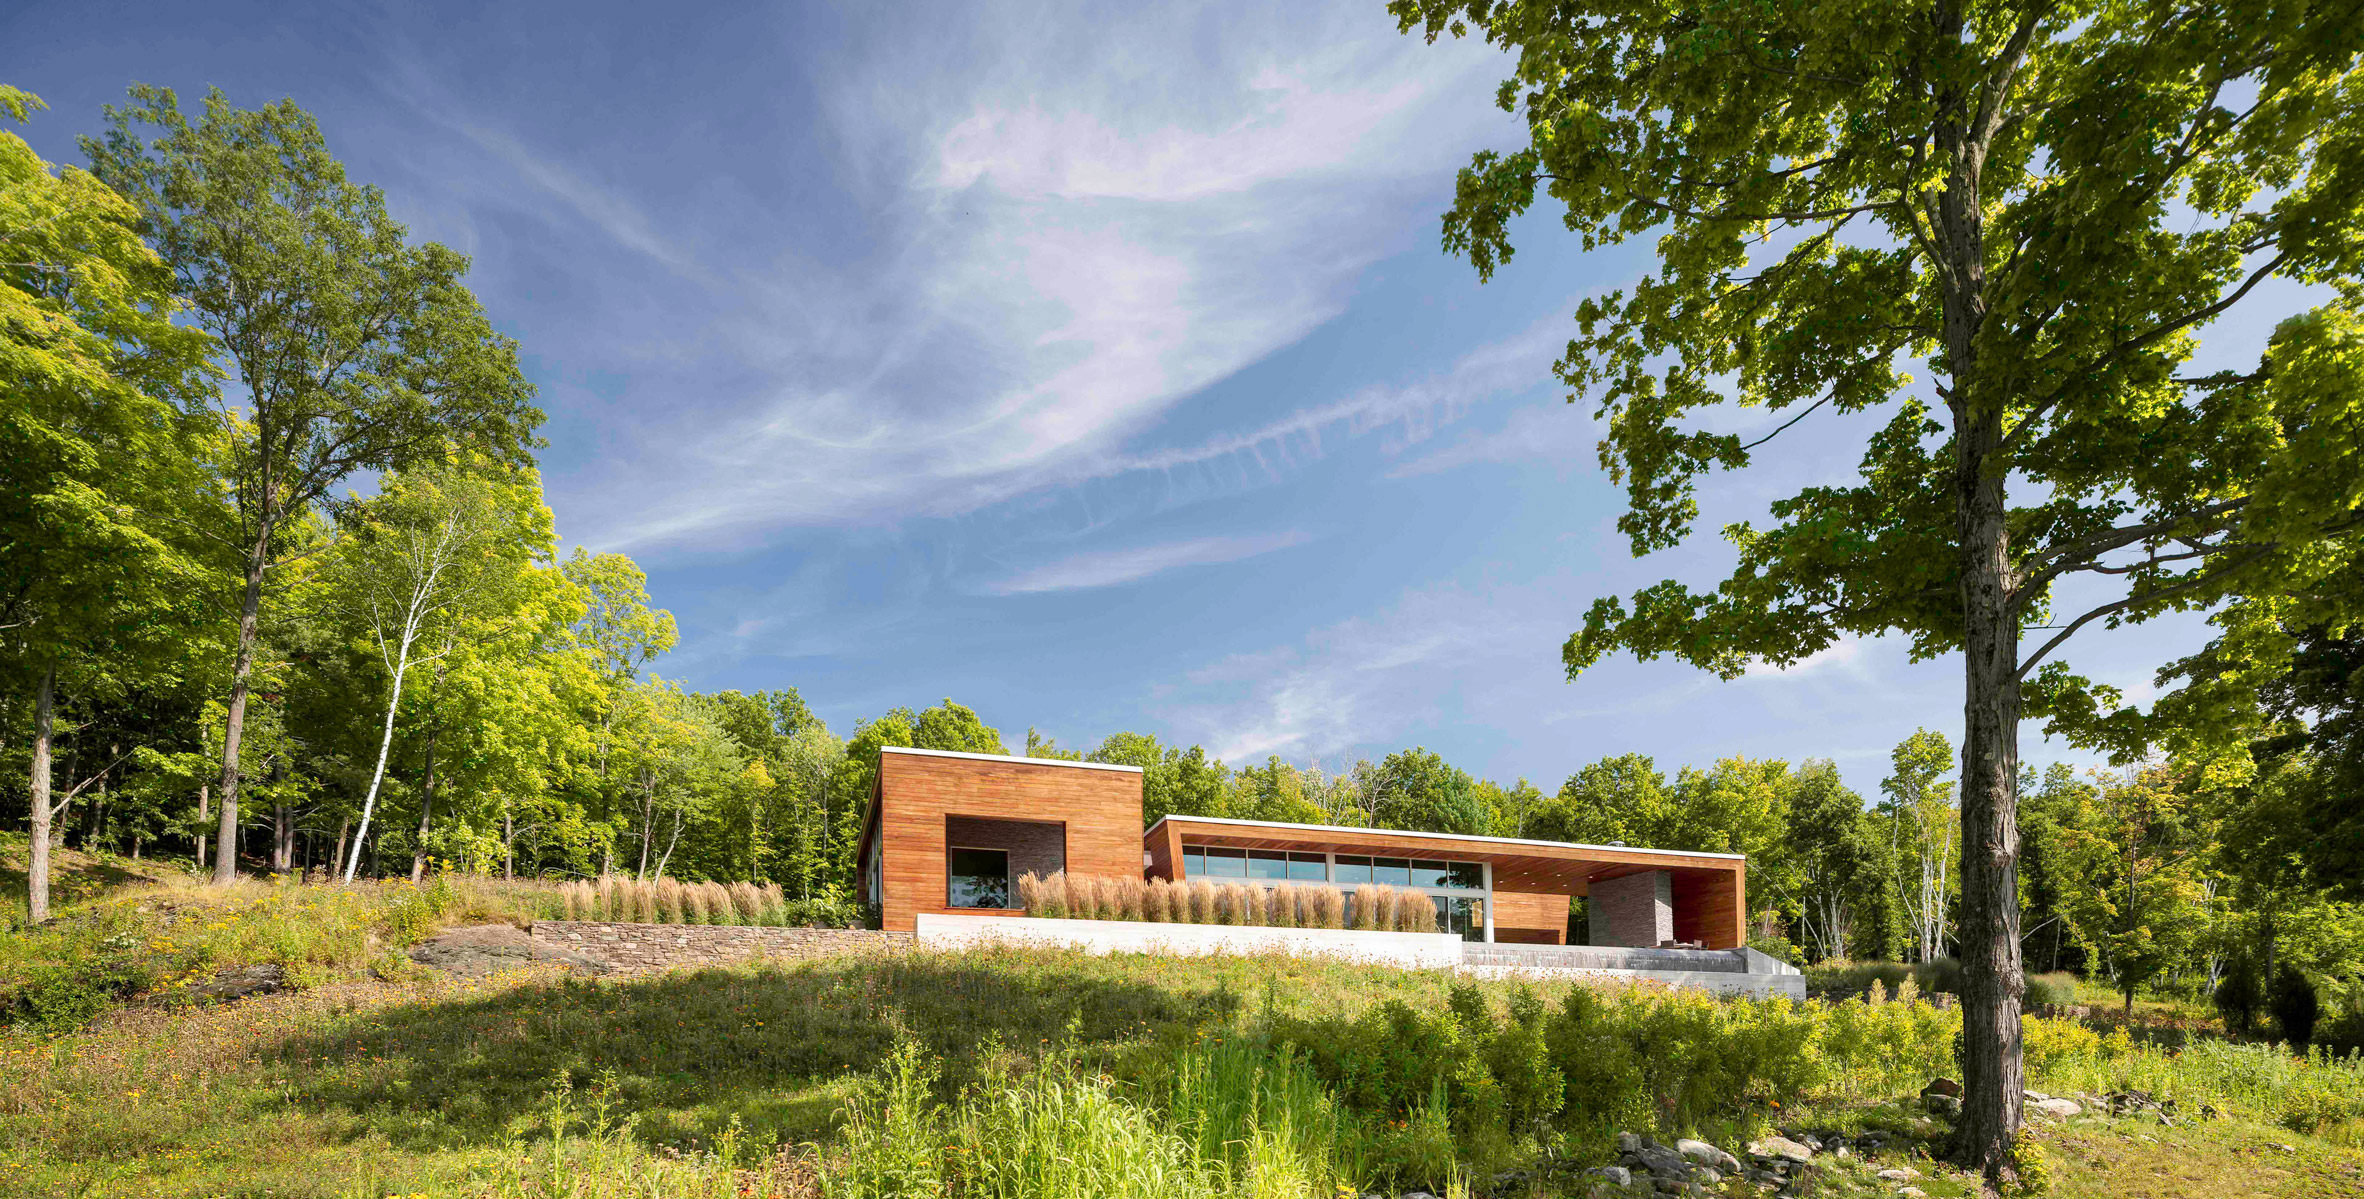 Slanted wooden walls form holiday home in upstate New York by Hariri & Hariri